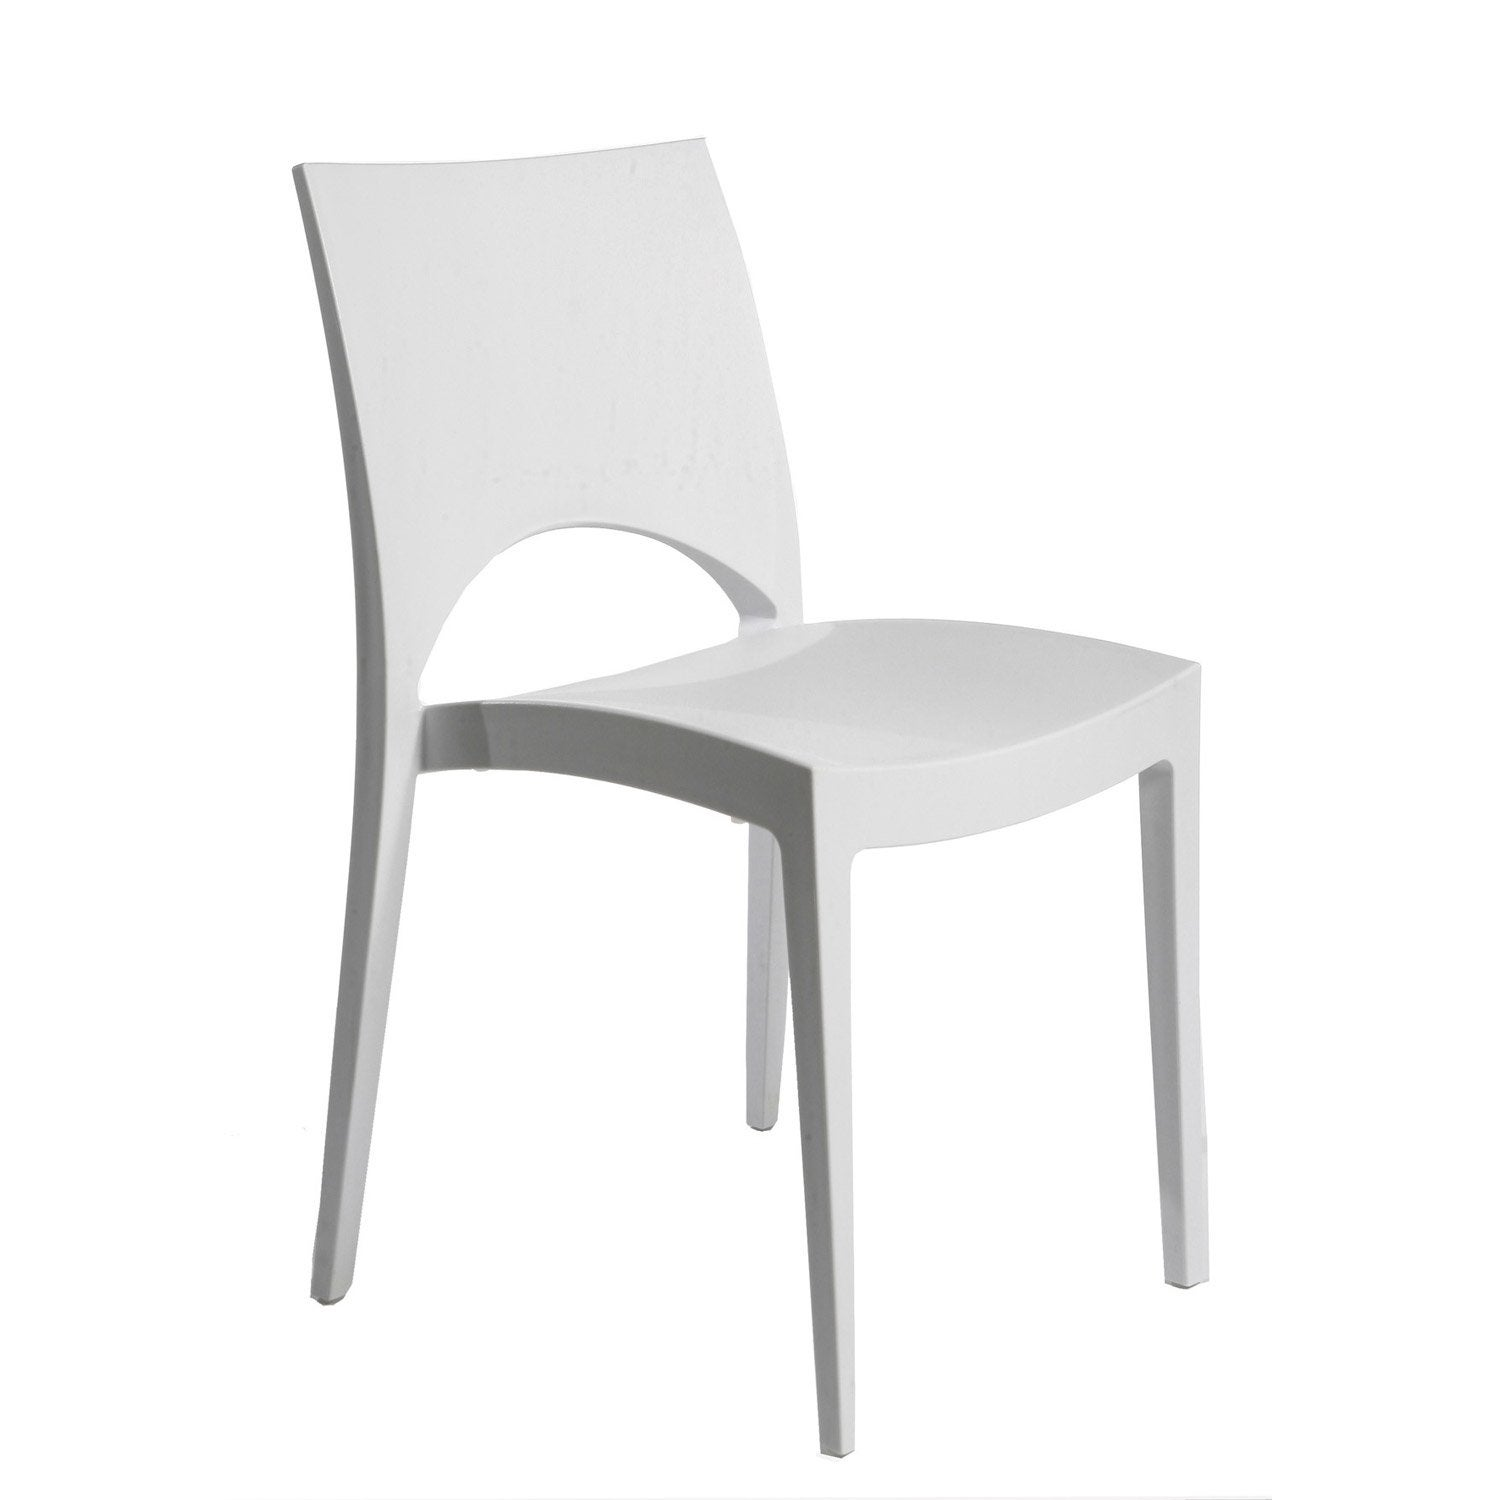 Chaise de jardin en r sine paris greenpol blanc leroy merlin - Chaise de jardin empilable ...